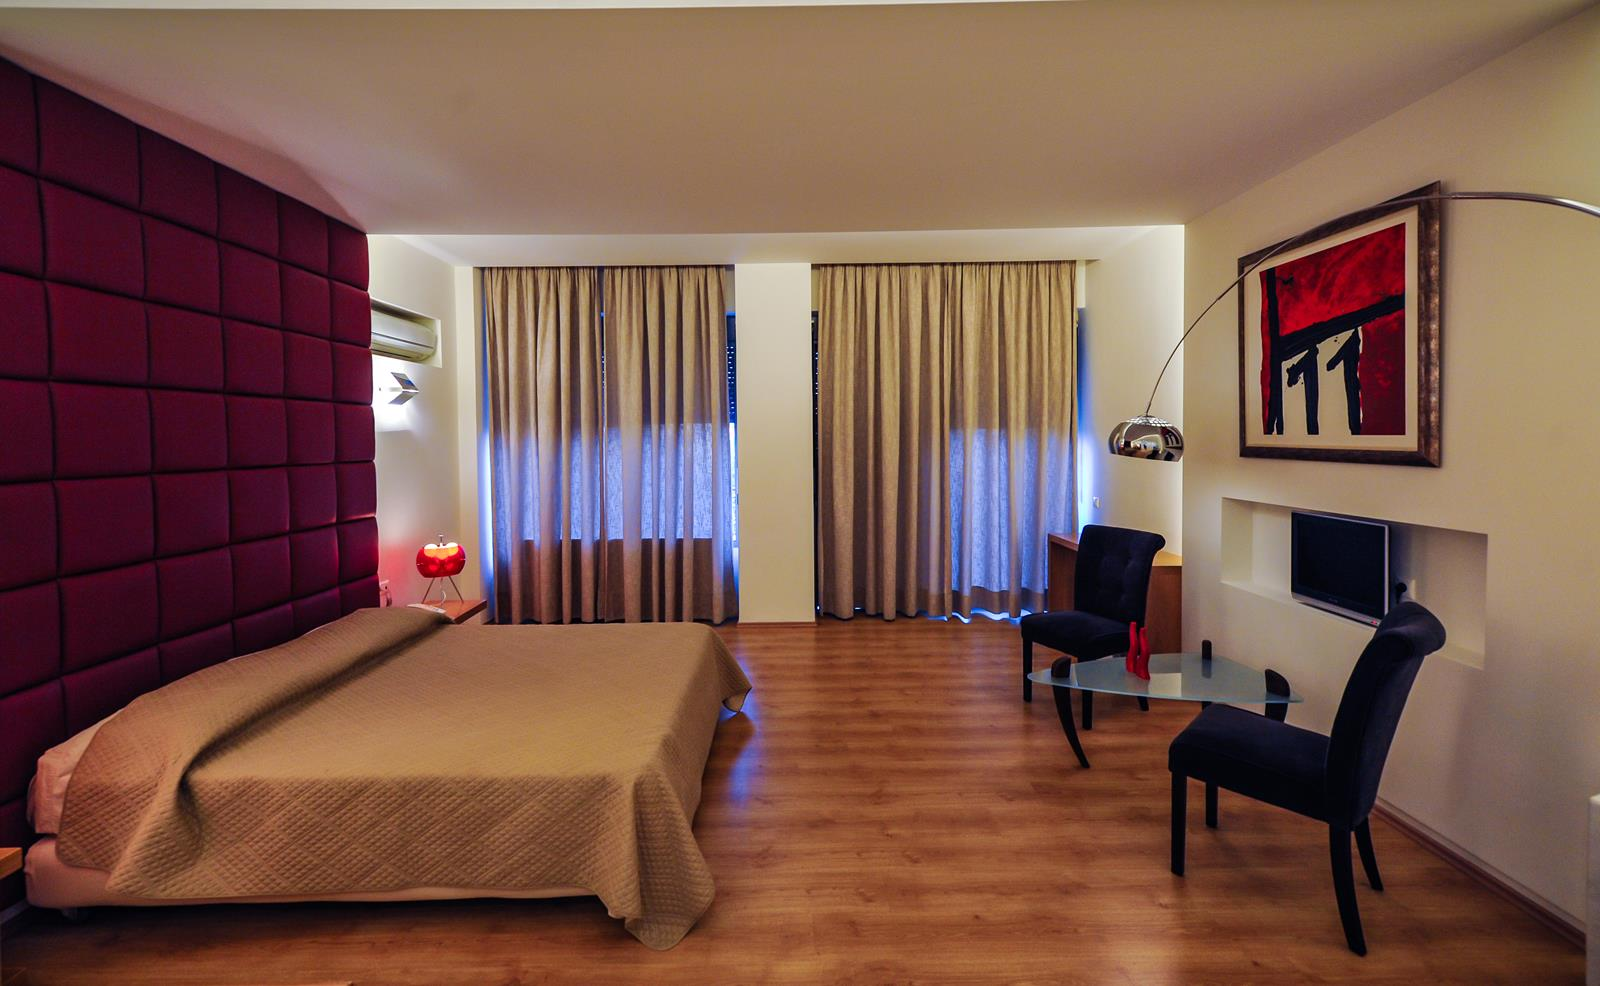 messini greece accommodation | Kleopatra Inn Hotel